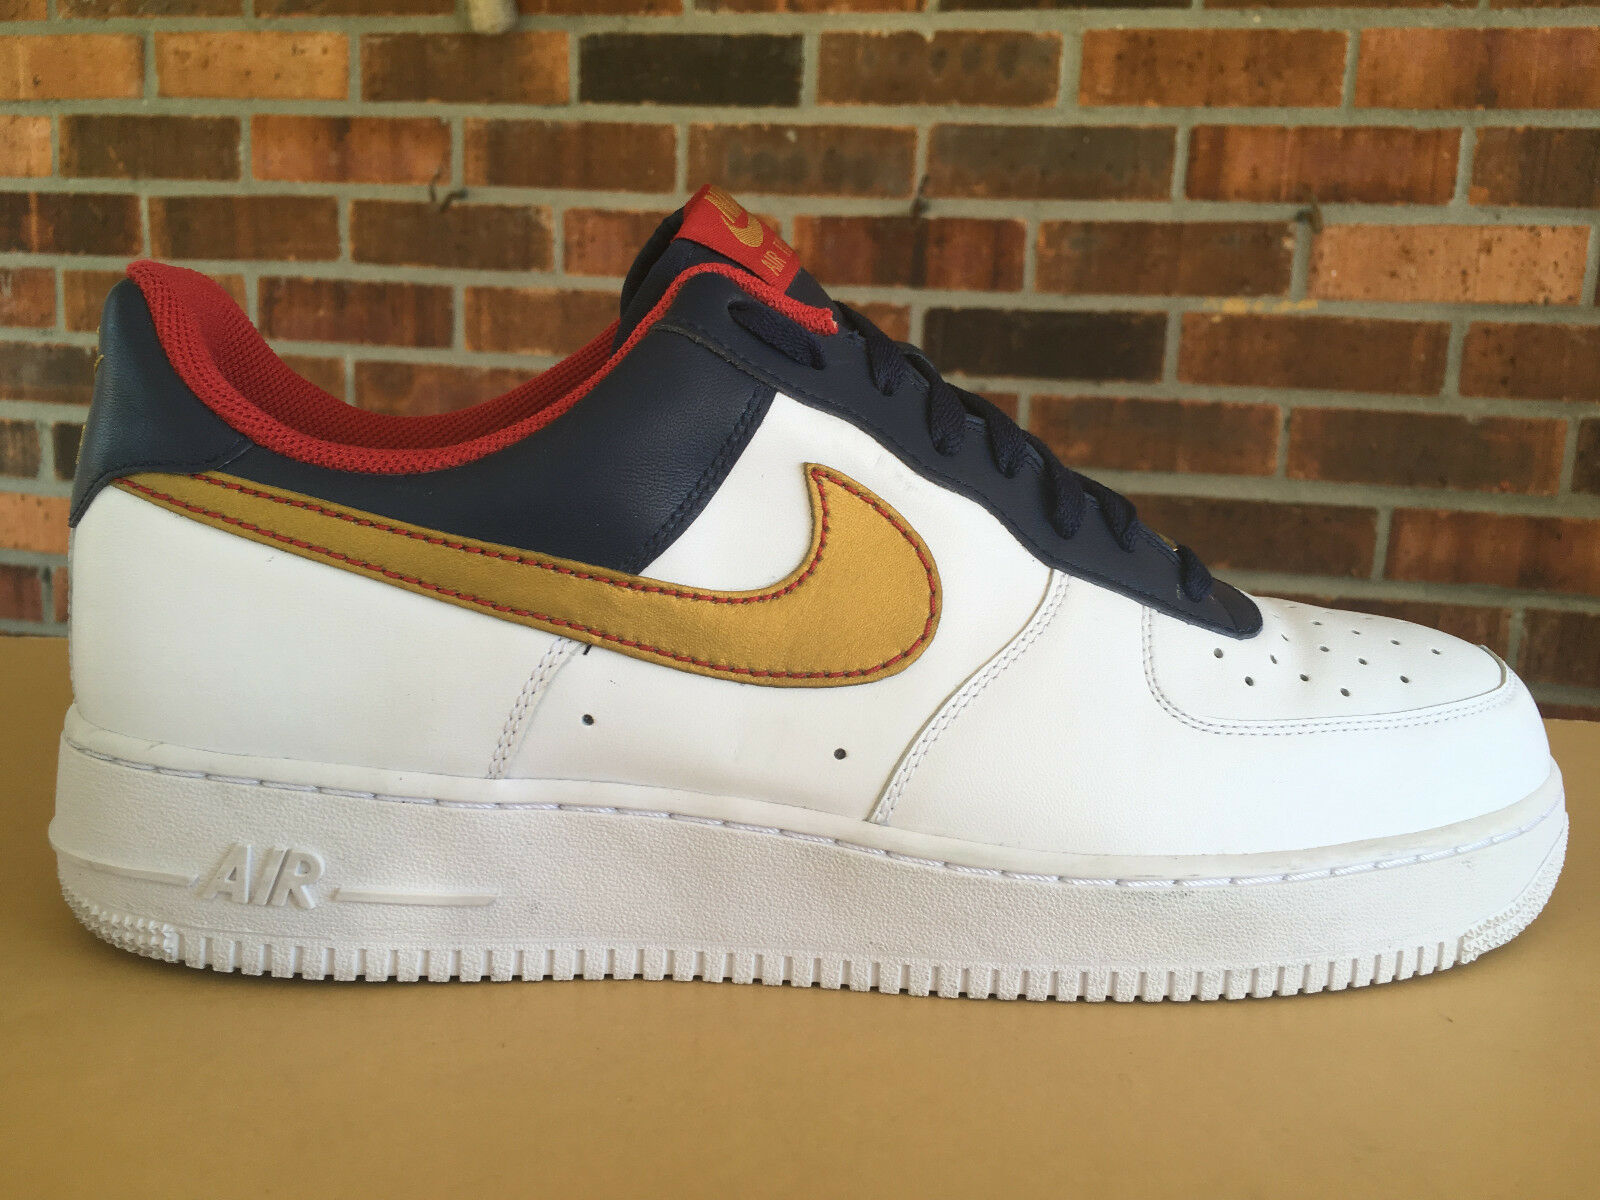 Nike Air Force 1 Charles Barkley Barcelona Olympics Sz 14 317295-171     W54(10)